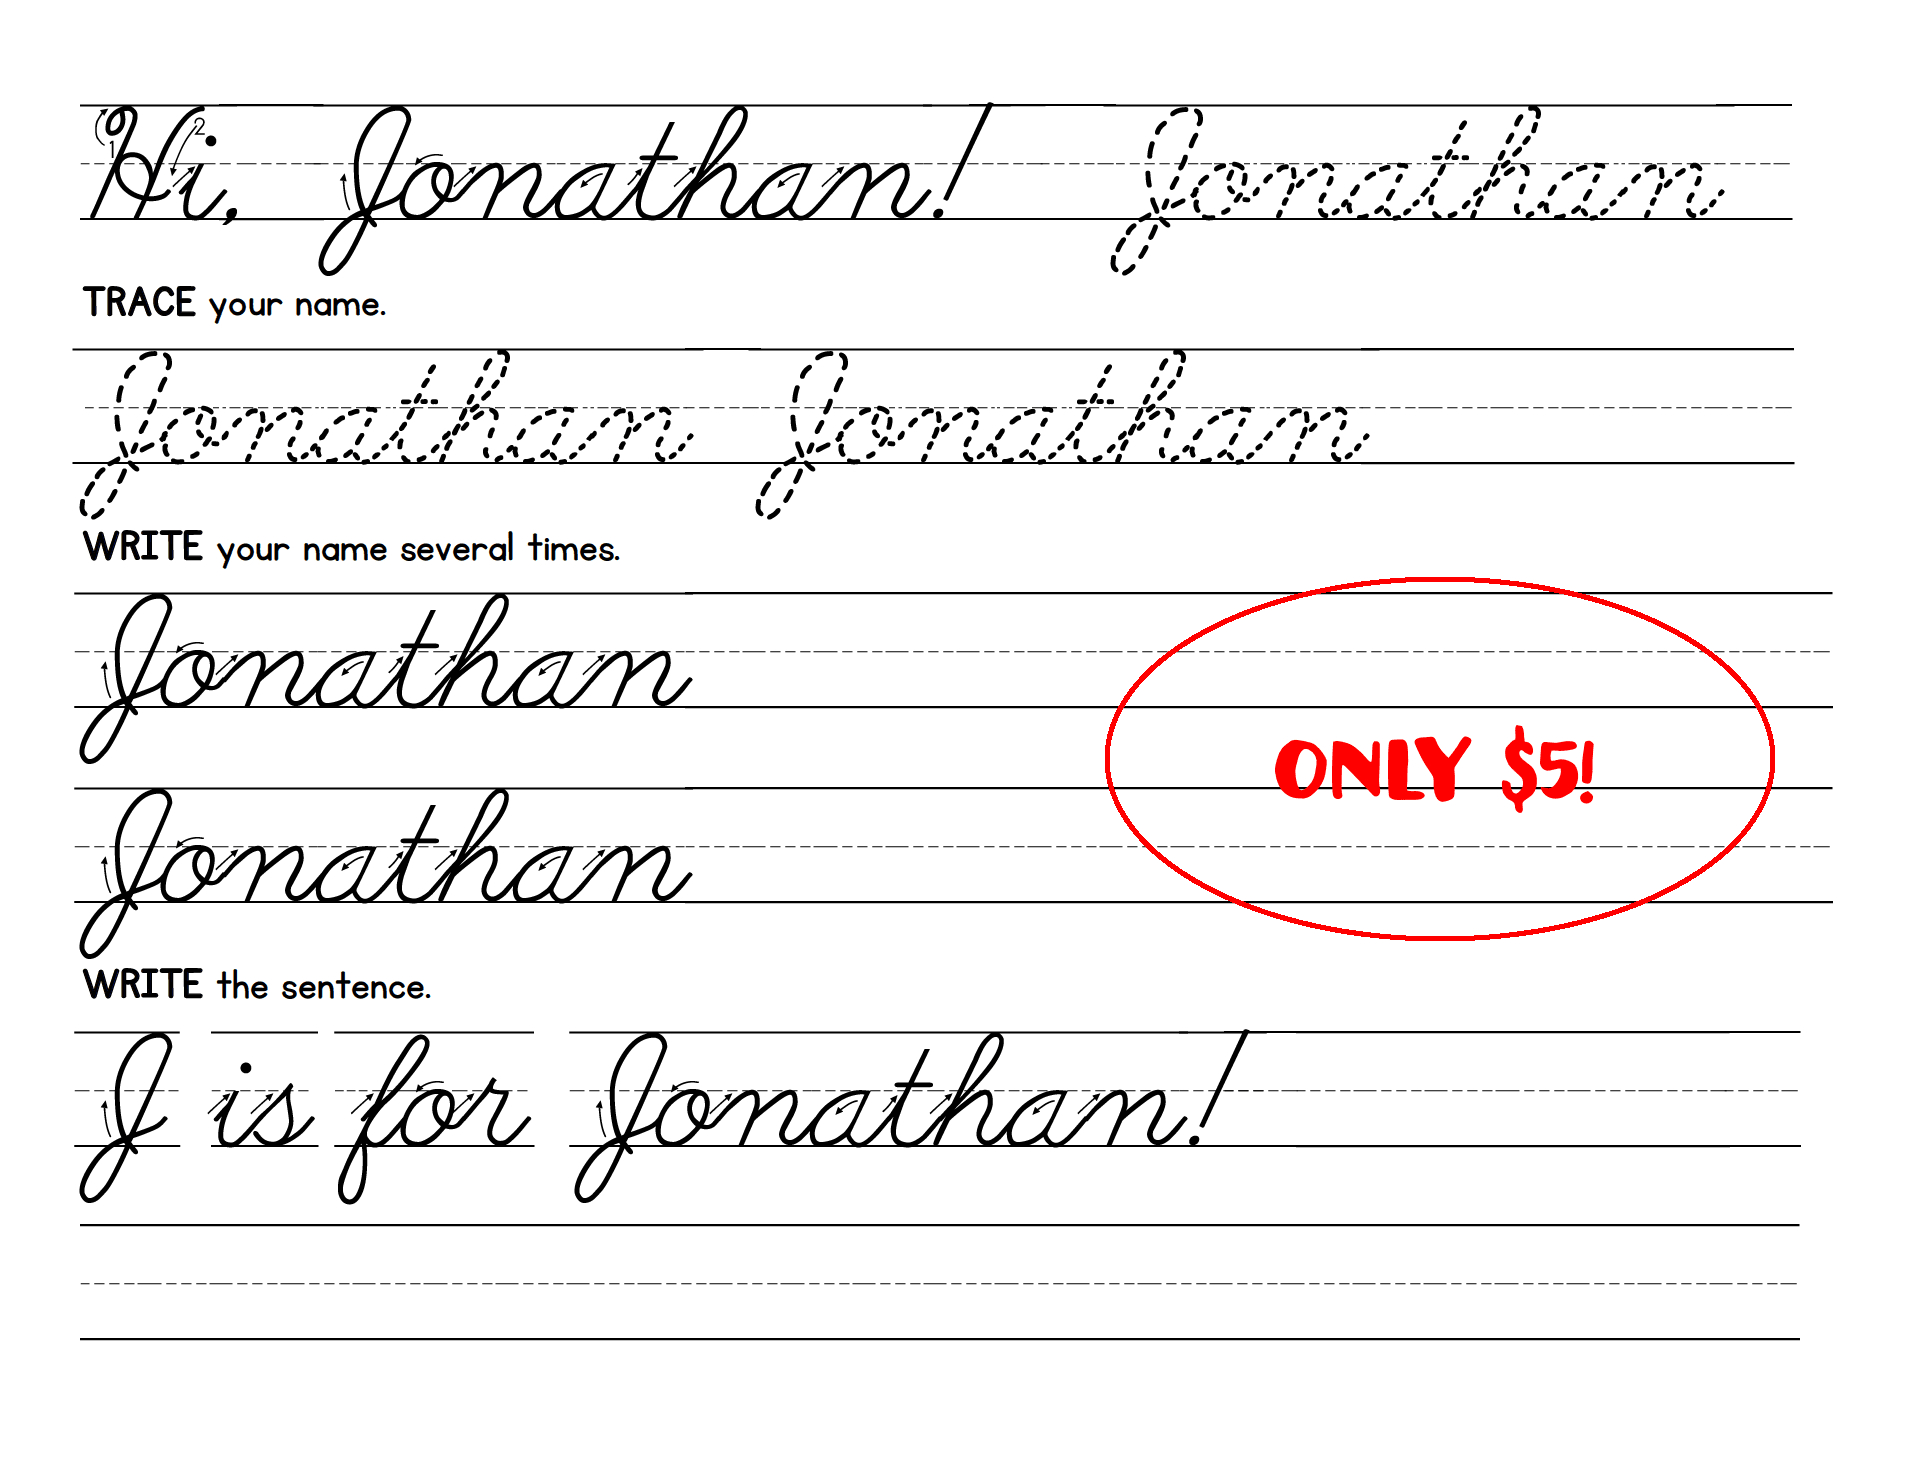 Create Personalized Cursive Handwriting Worksheets For Kids in Jonathan Name Tracing